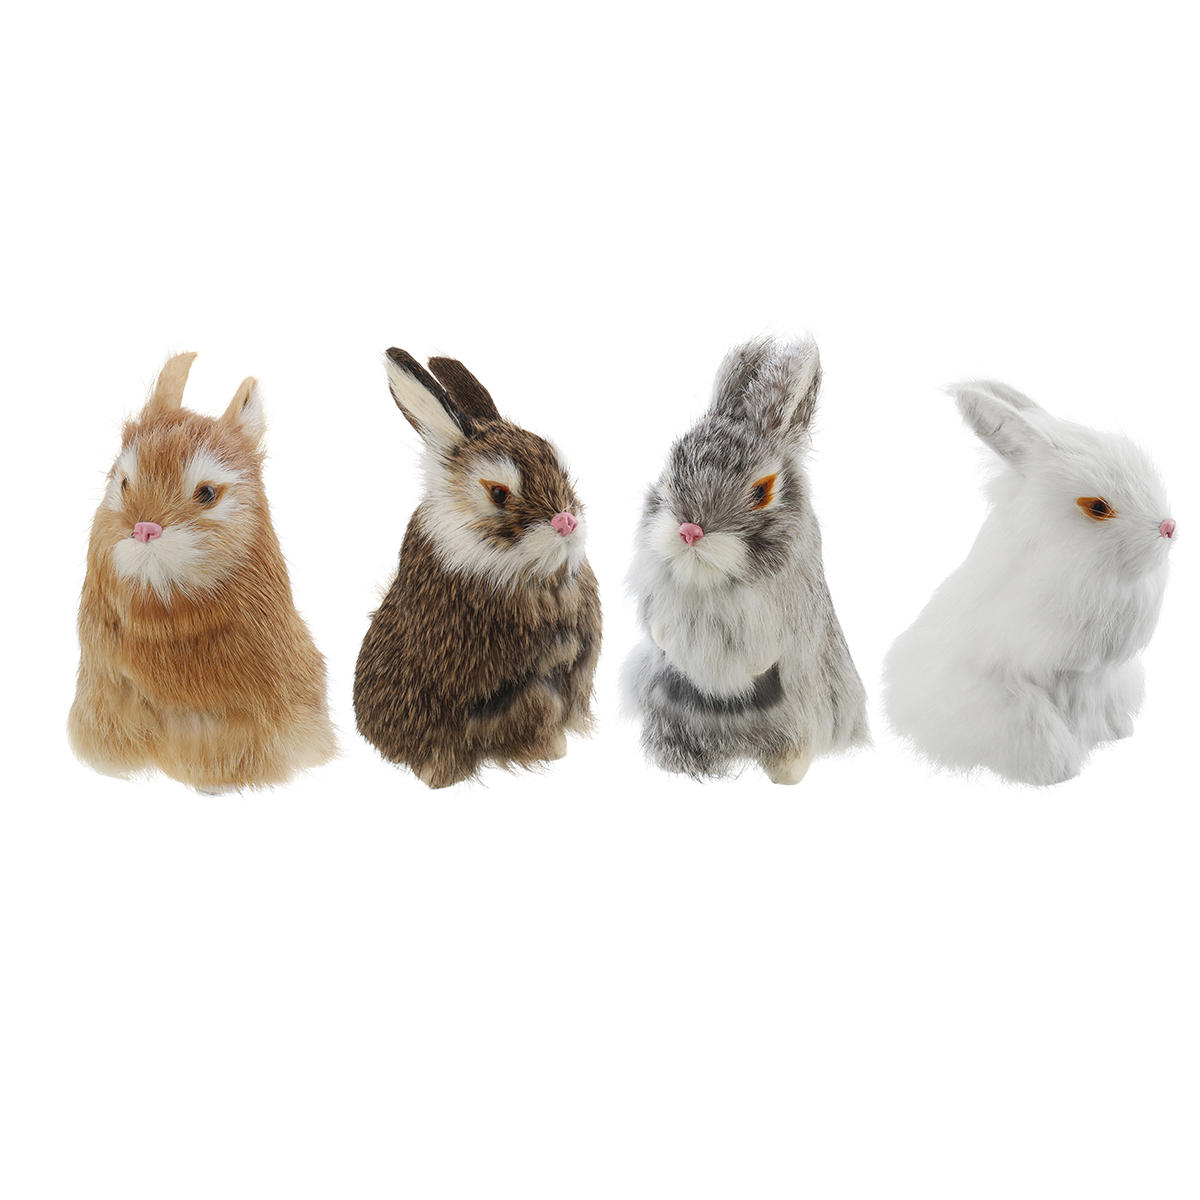 Gray/Yellow/Brown/White Rabbits Handmade Easter Bunnies Home Decorations Desktop Ornament - 1